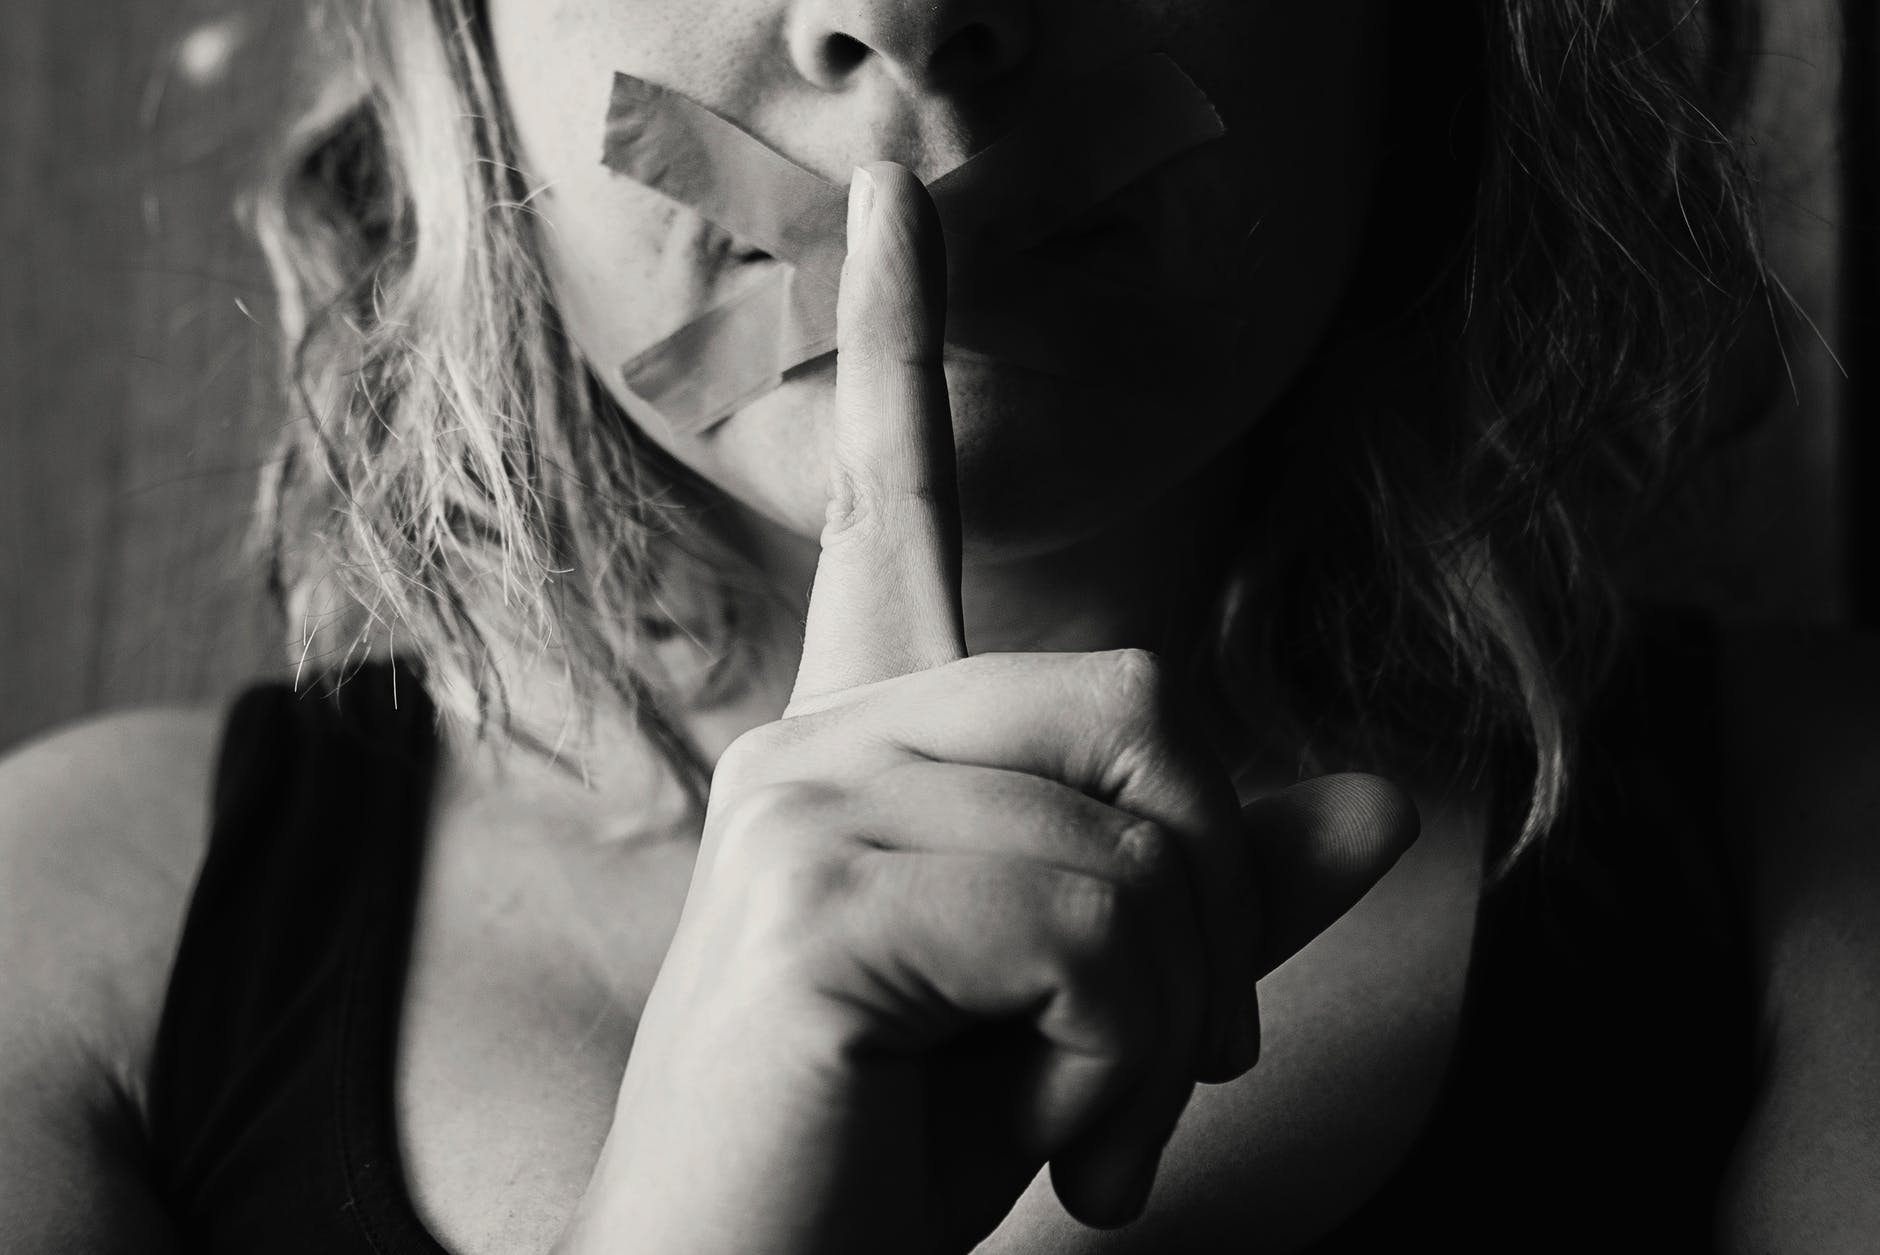 Legal Options for Survivors of Sexual Assault